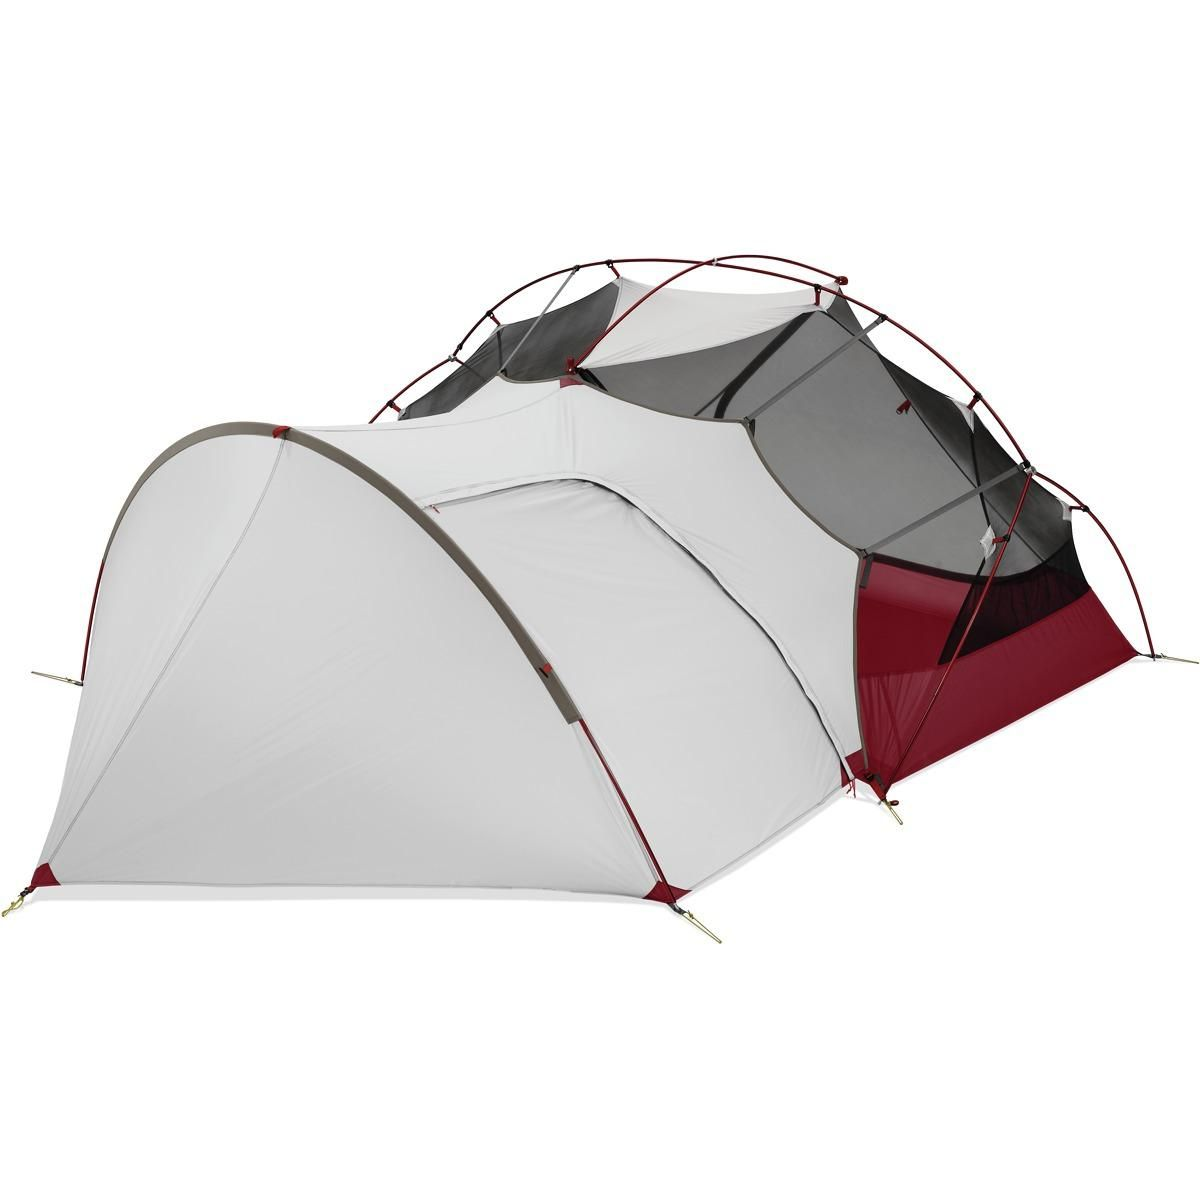 The Hubba Gear Shed provides covered storage space for your gear and increases the livability of Hubba™ and Hubba Hubba™ tents.  sc 1 st  Pinterest & Gear shed attachment for the Hubba or Hubba Hubba from MSR. | Toys ...